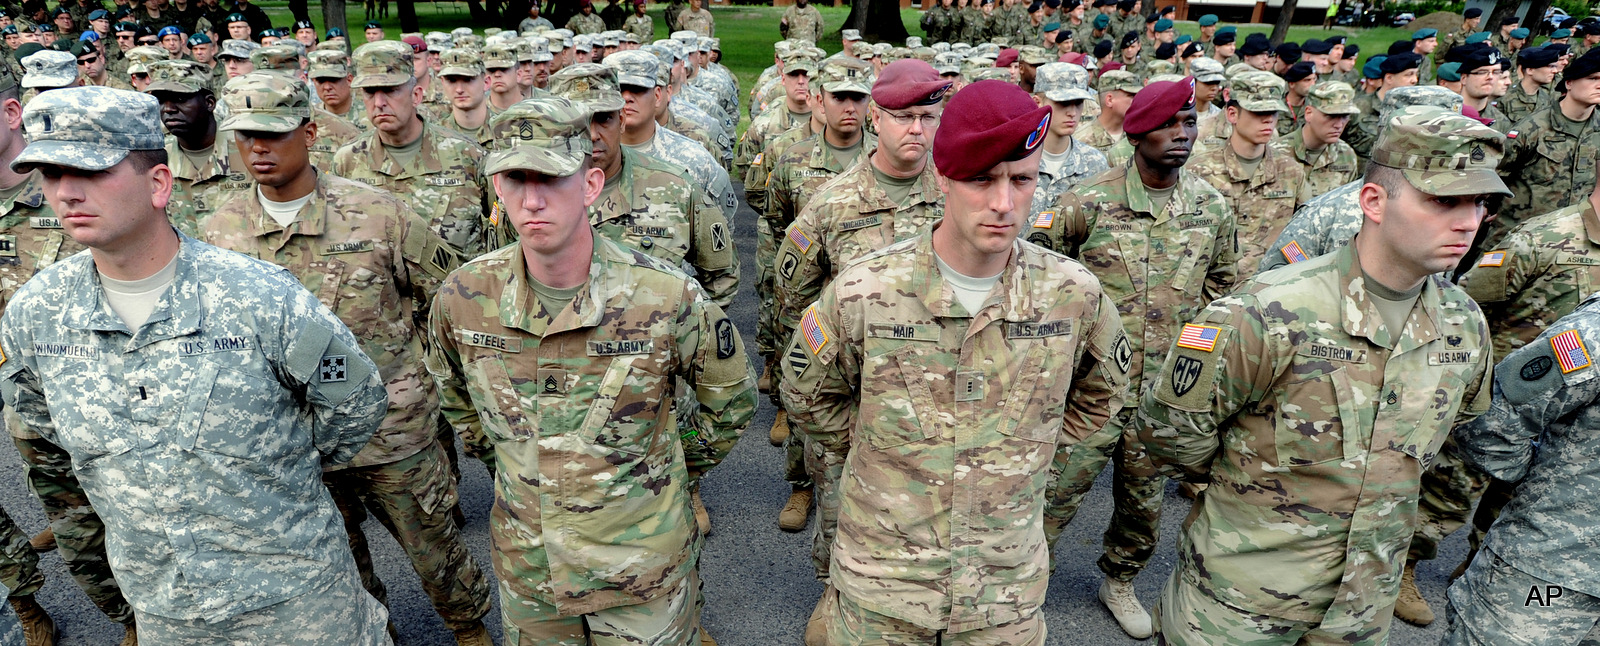 U.S. Army soldiers representing units participating in the the Anaconda-16 military exercise, attend the opening ceremony, in Warsaw, Poland, Monday, June 6, 2016. Poland and some NATO members launched their biggest ever exercise, involving some 31,000 troops in a show of force to neighboring Russia.